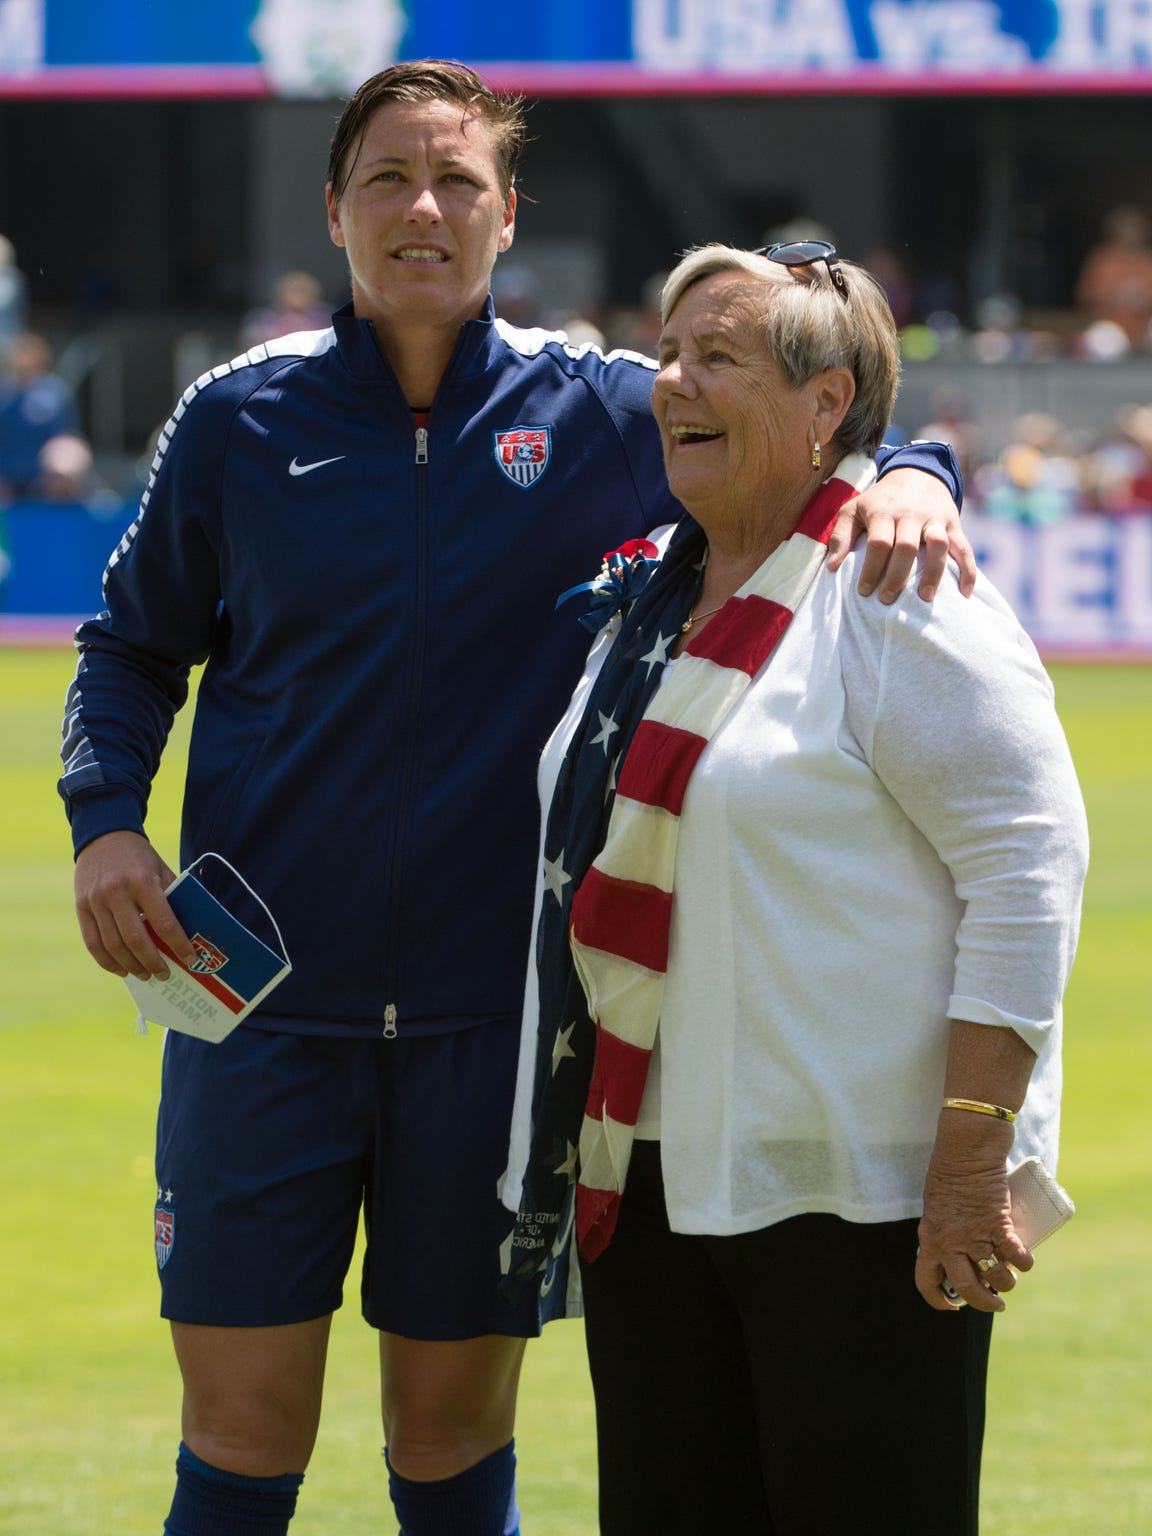 Abby Wambach is escorted onto the field by her mom